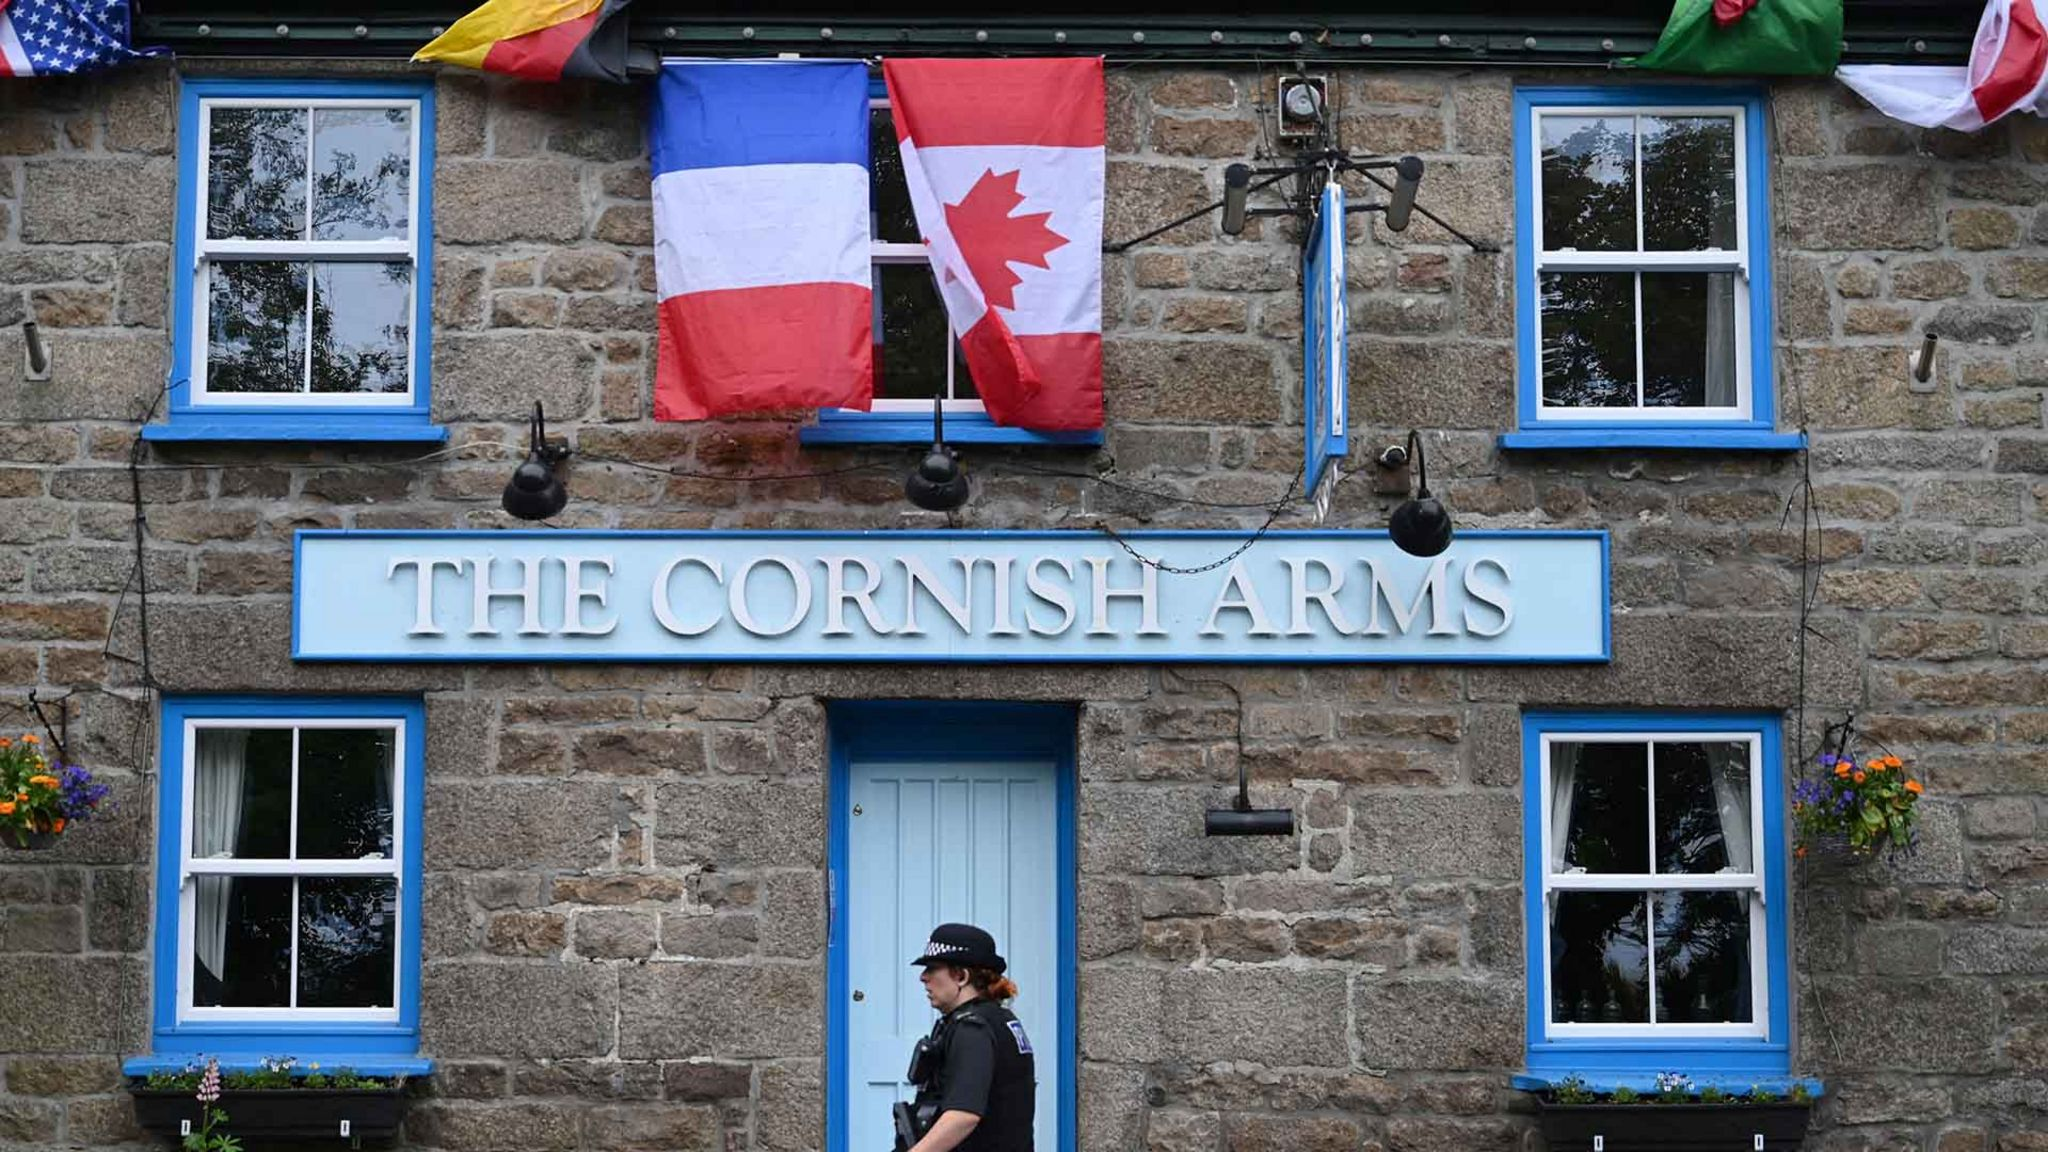 A British police officer walks past The Cornish Arms gastropub in St Ives, Cornwall on June 10, 2021,